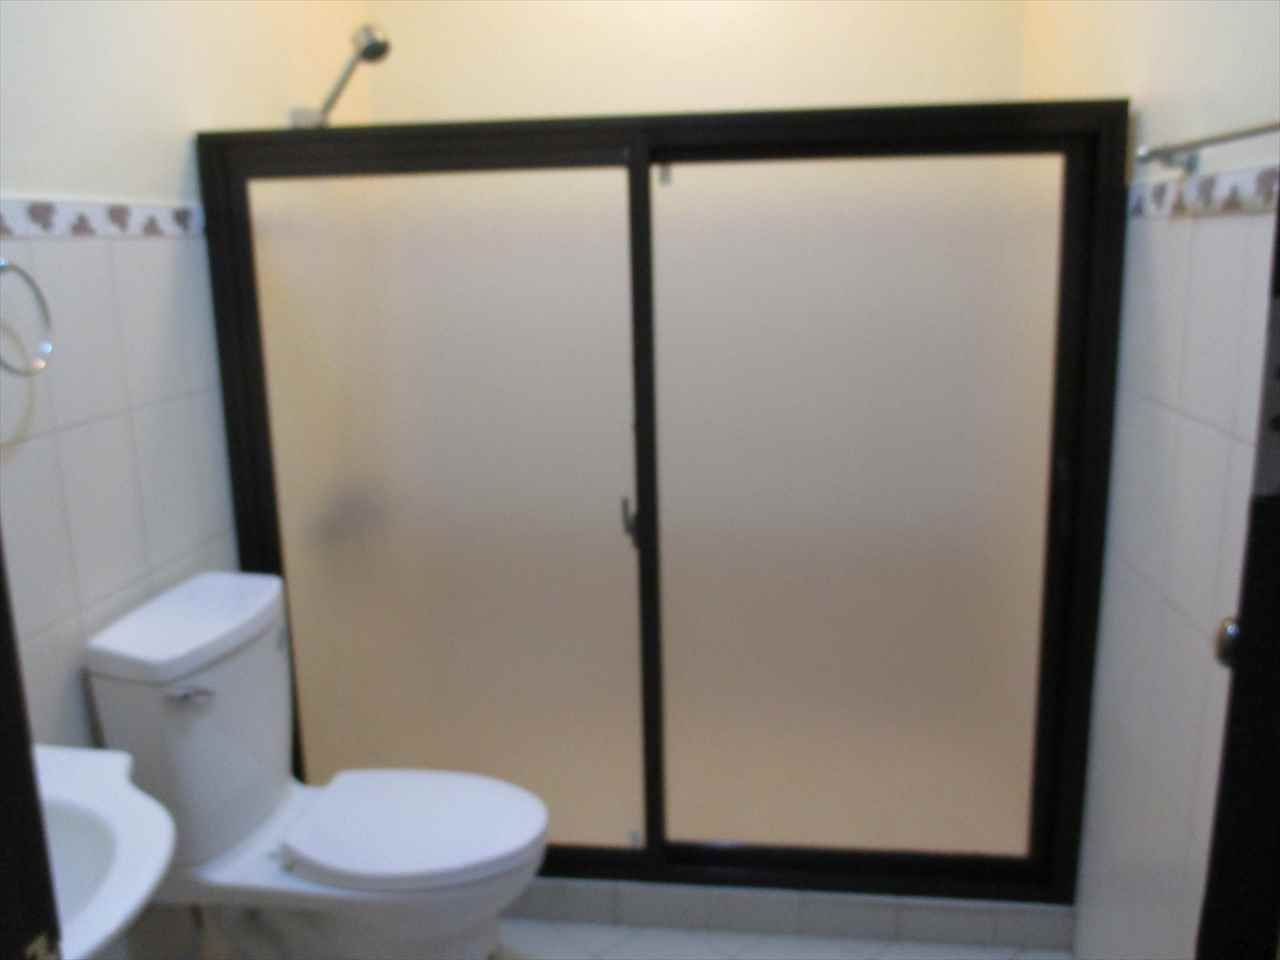 Sliding door of shower room